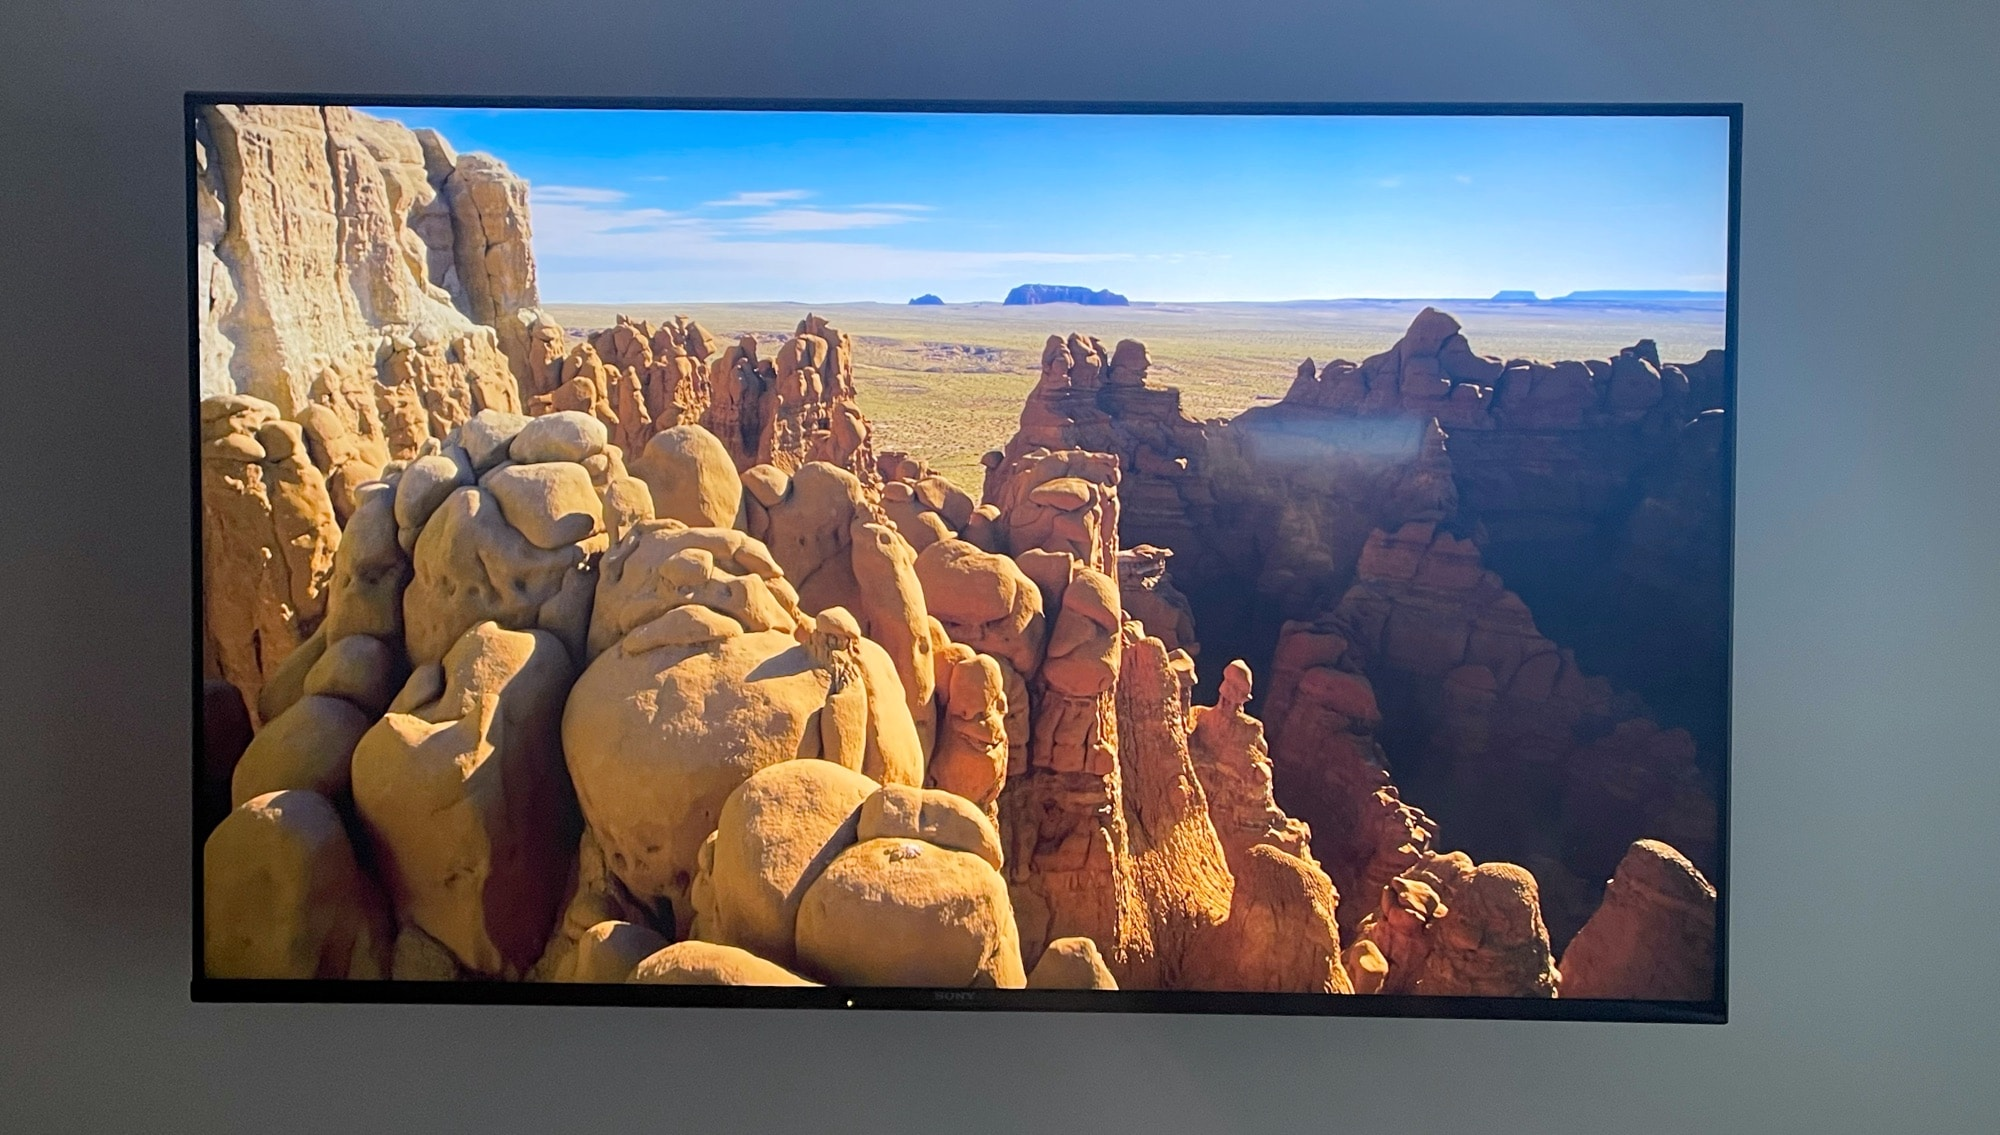 Reviewing the Sony Bravia X90J